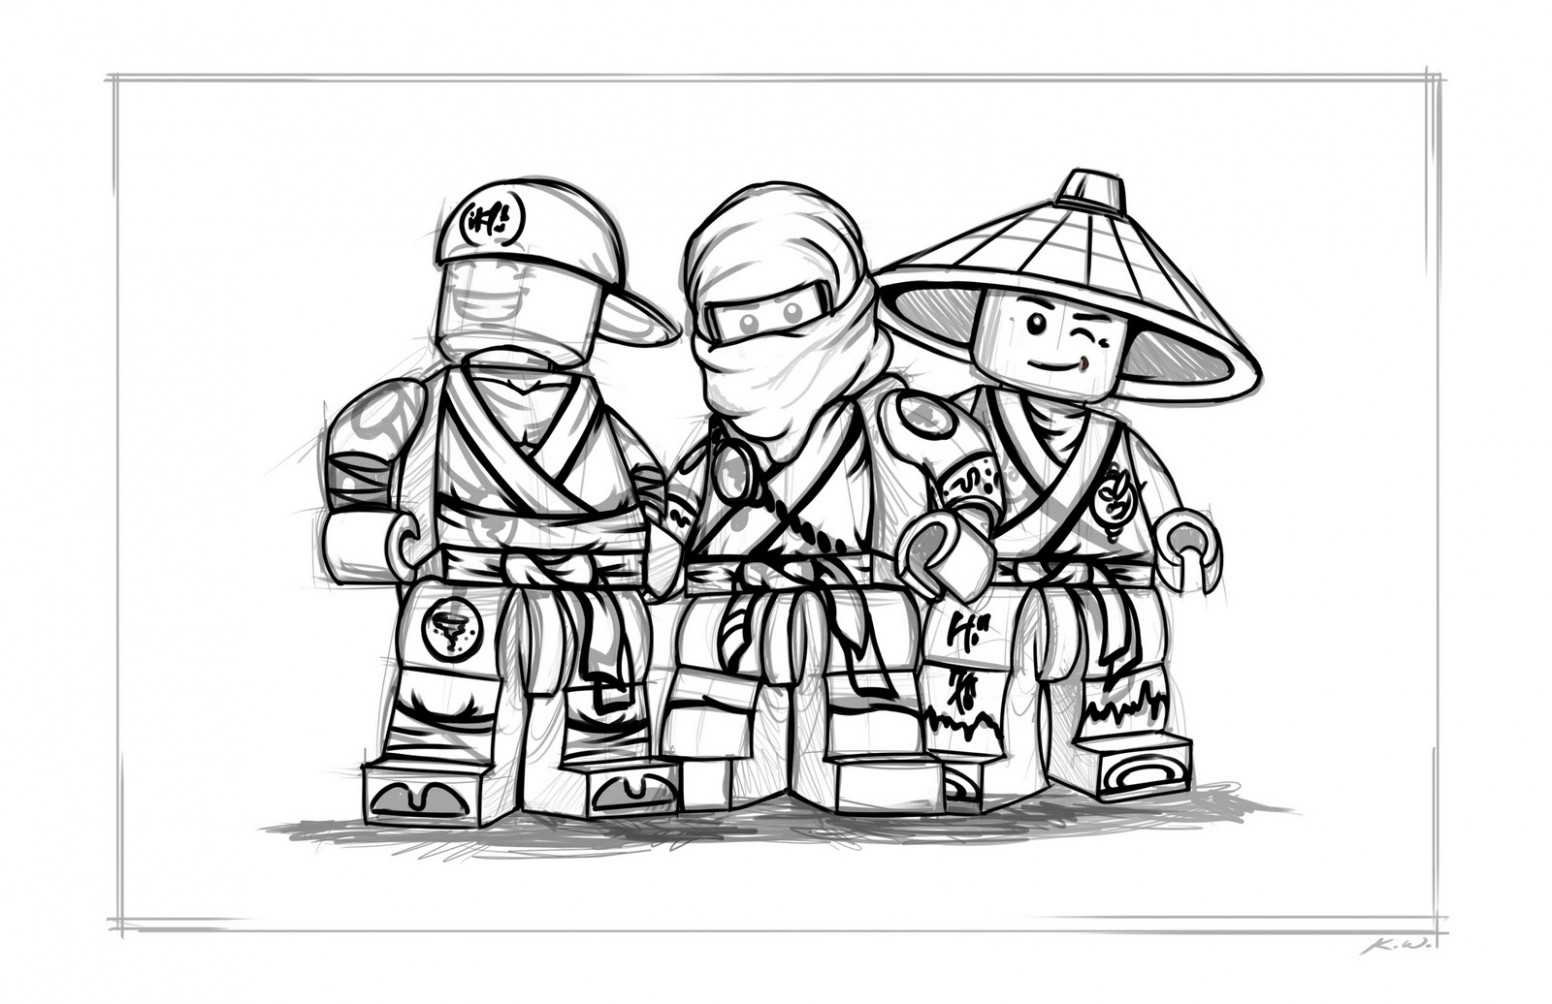 Free Printable Ninjago Coloring Pages For Kids – ninjago coloring book